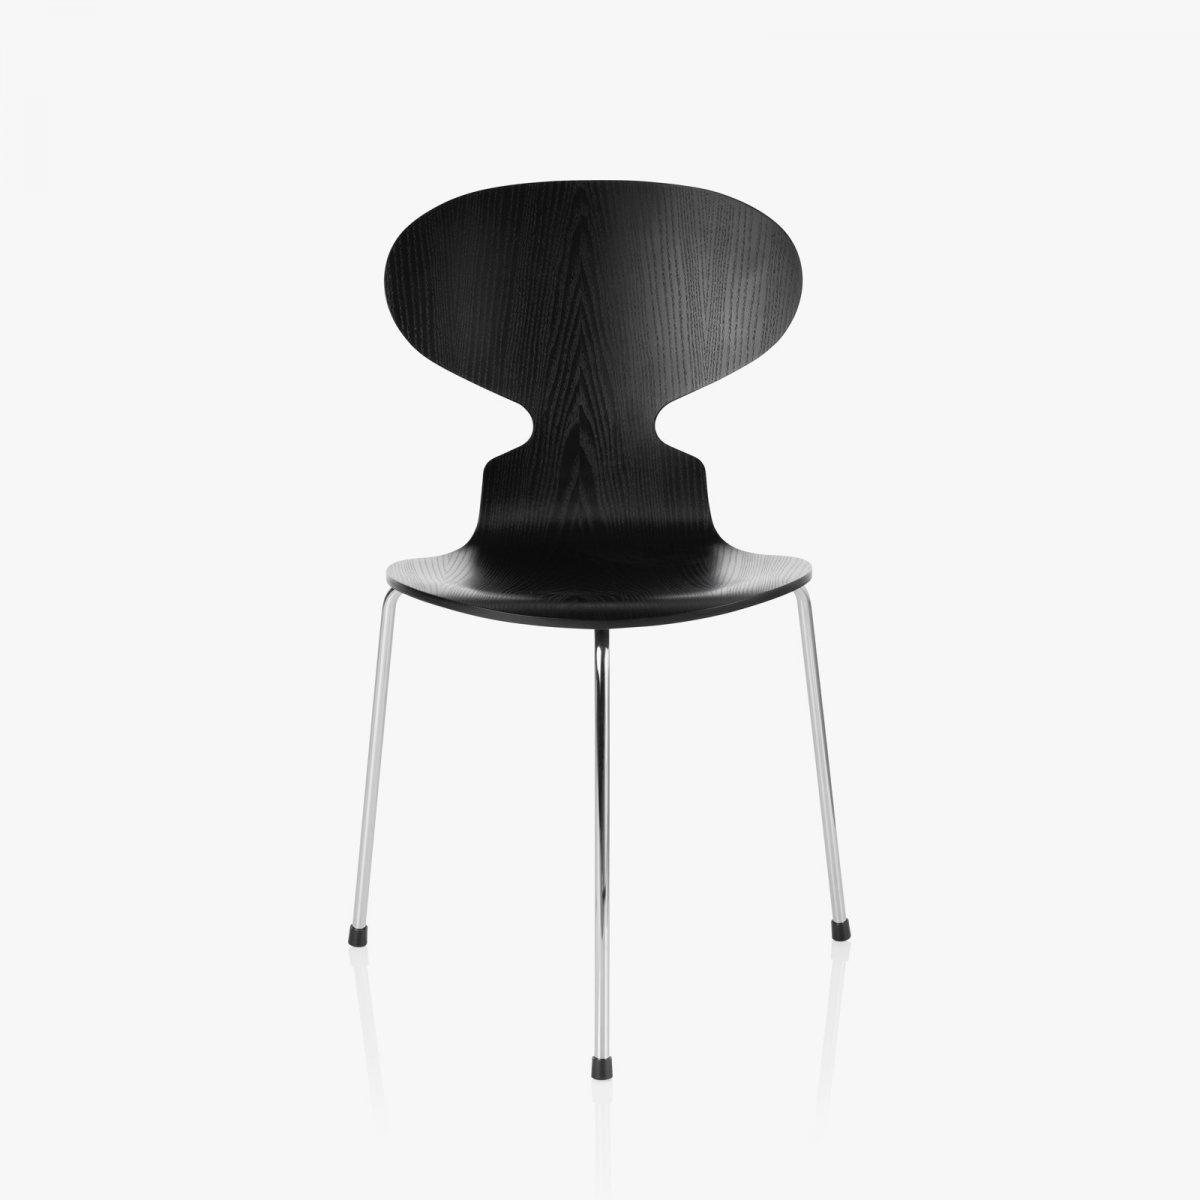 Ant chair 3100, black.